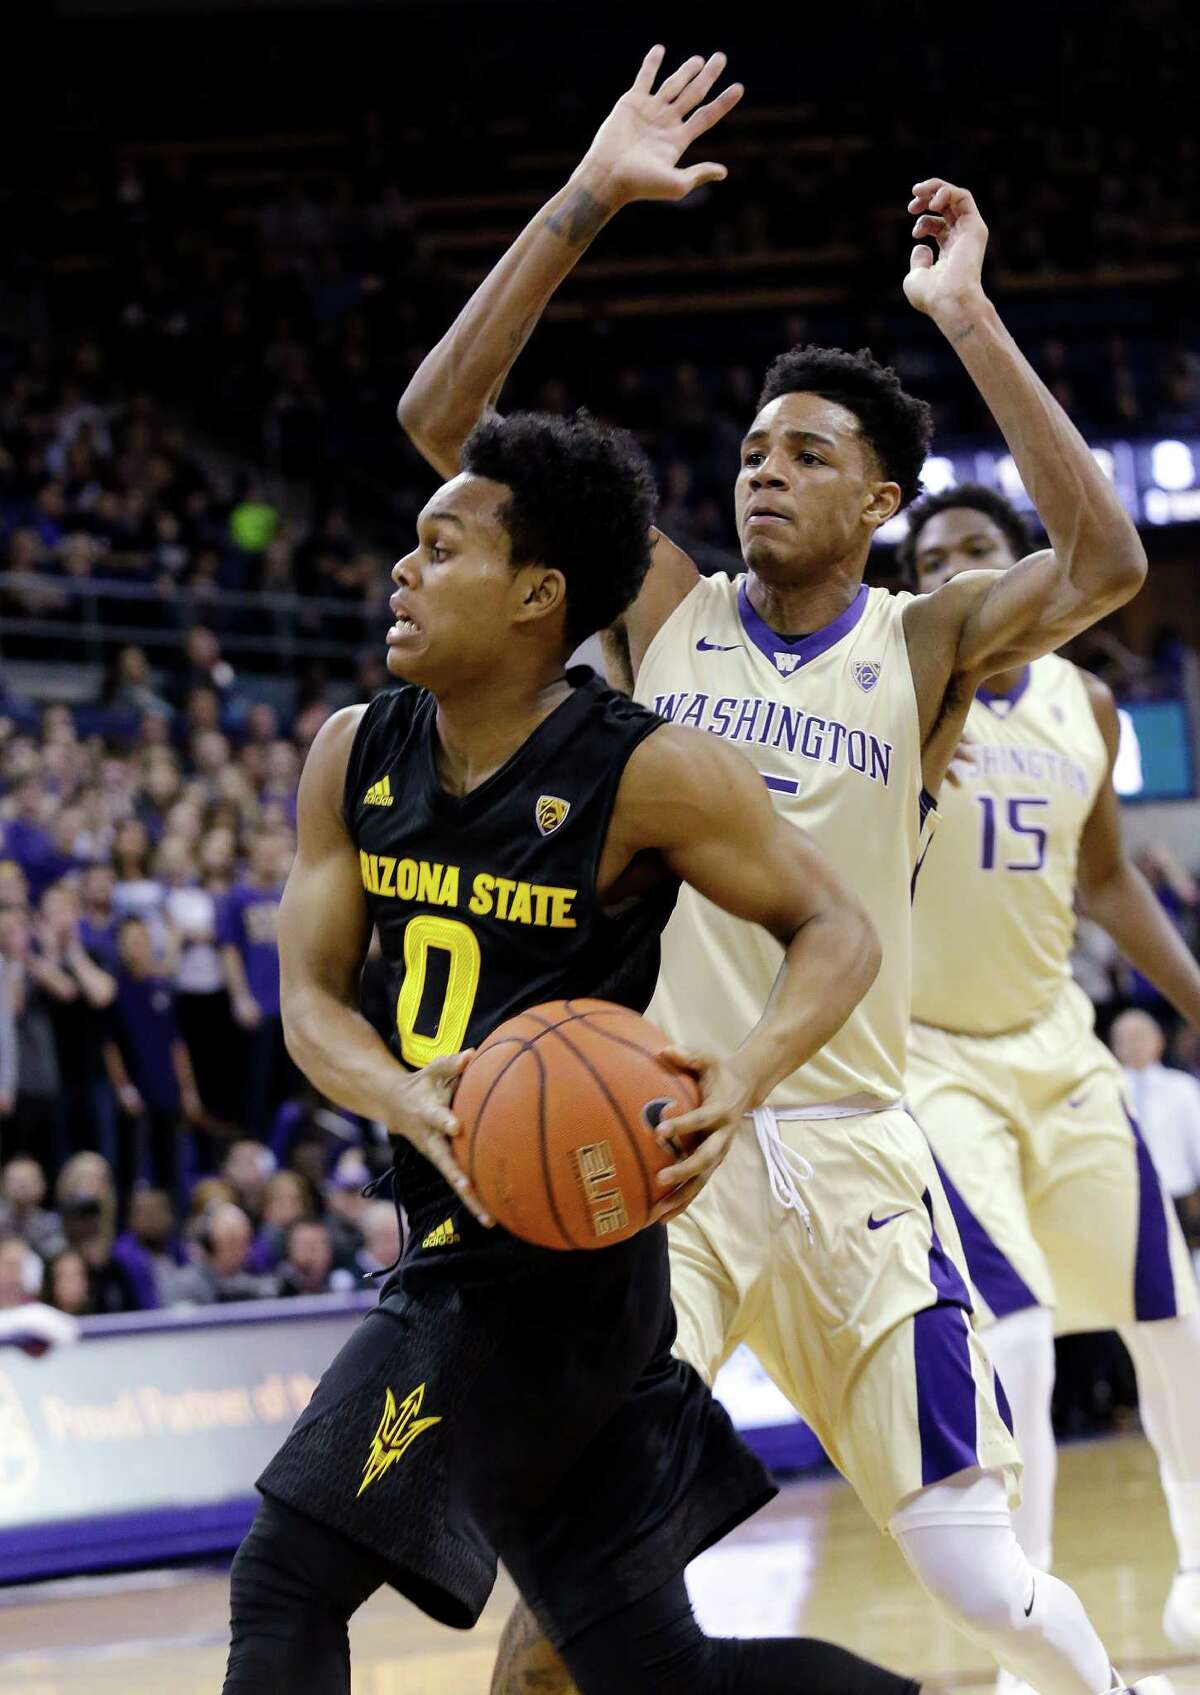 Arizona State's Tra Holder (0) drives past Washington's Dejounte Murray during the first half of an NCAA college basketball game Wednesday, Feb. 3, 2016, in Seattle. (AP Photo/Elaine Thompson)